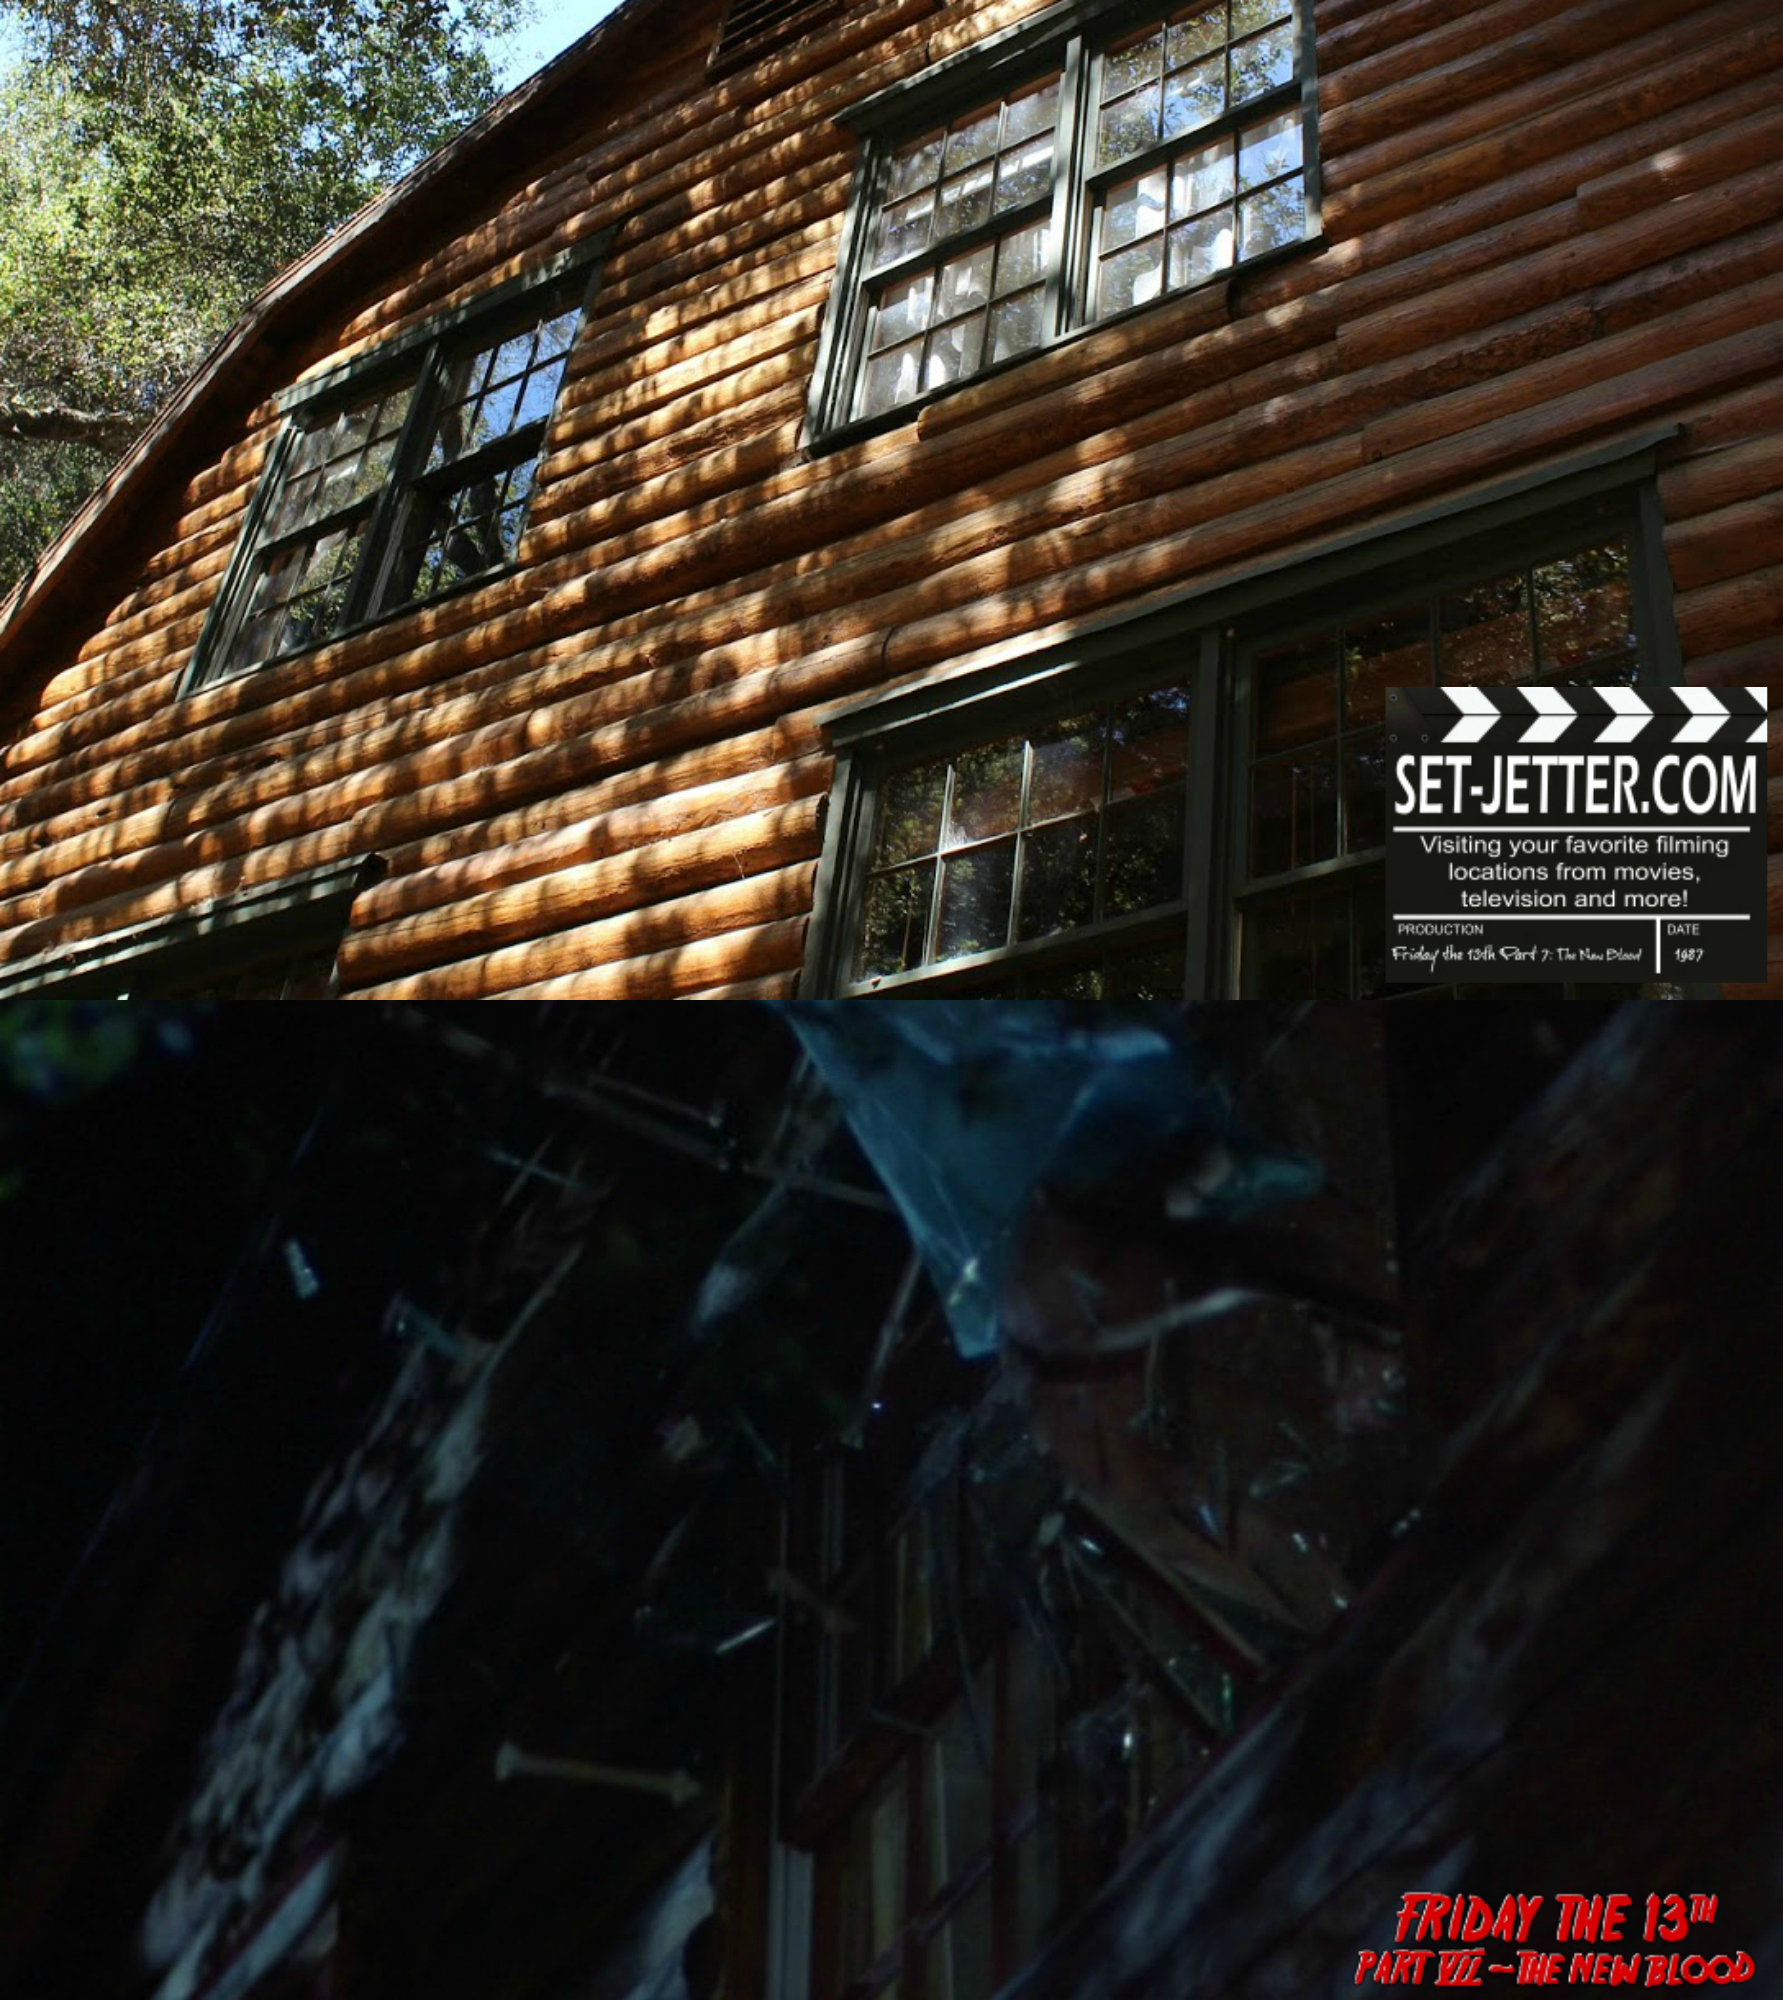 Friday the 13th Part VII comparison 11.jpg